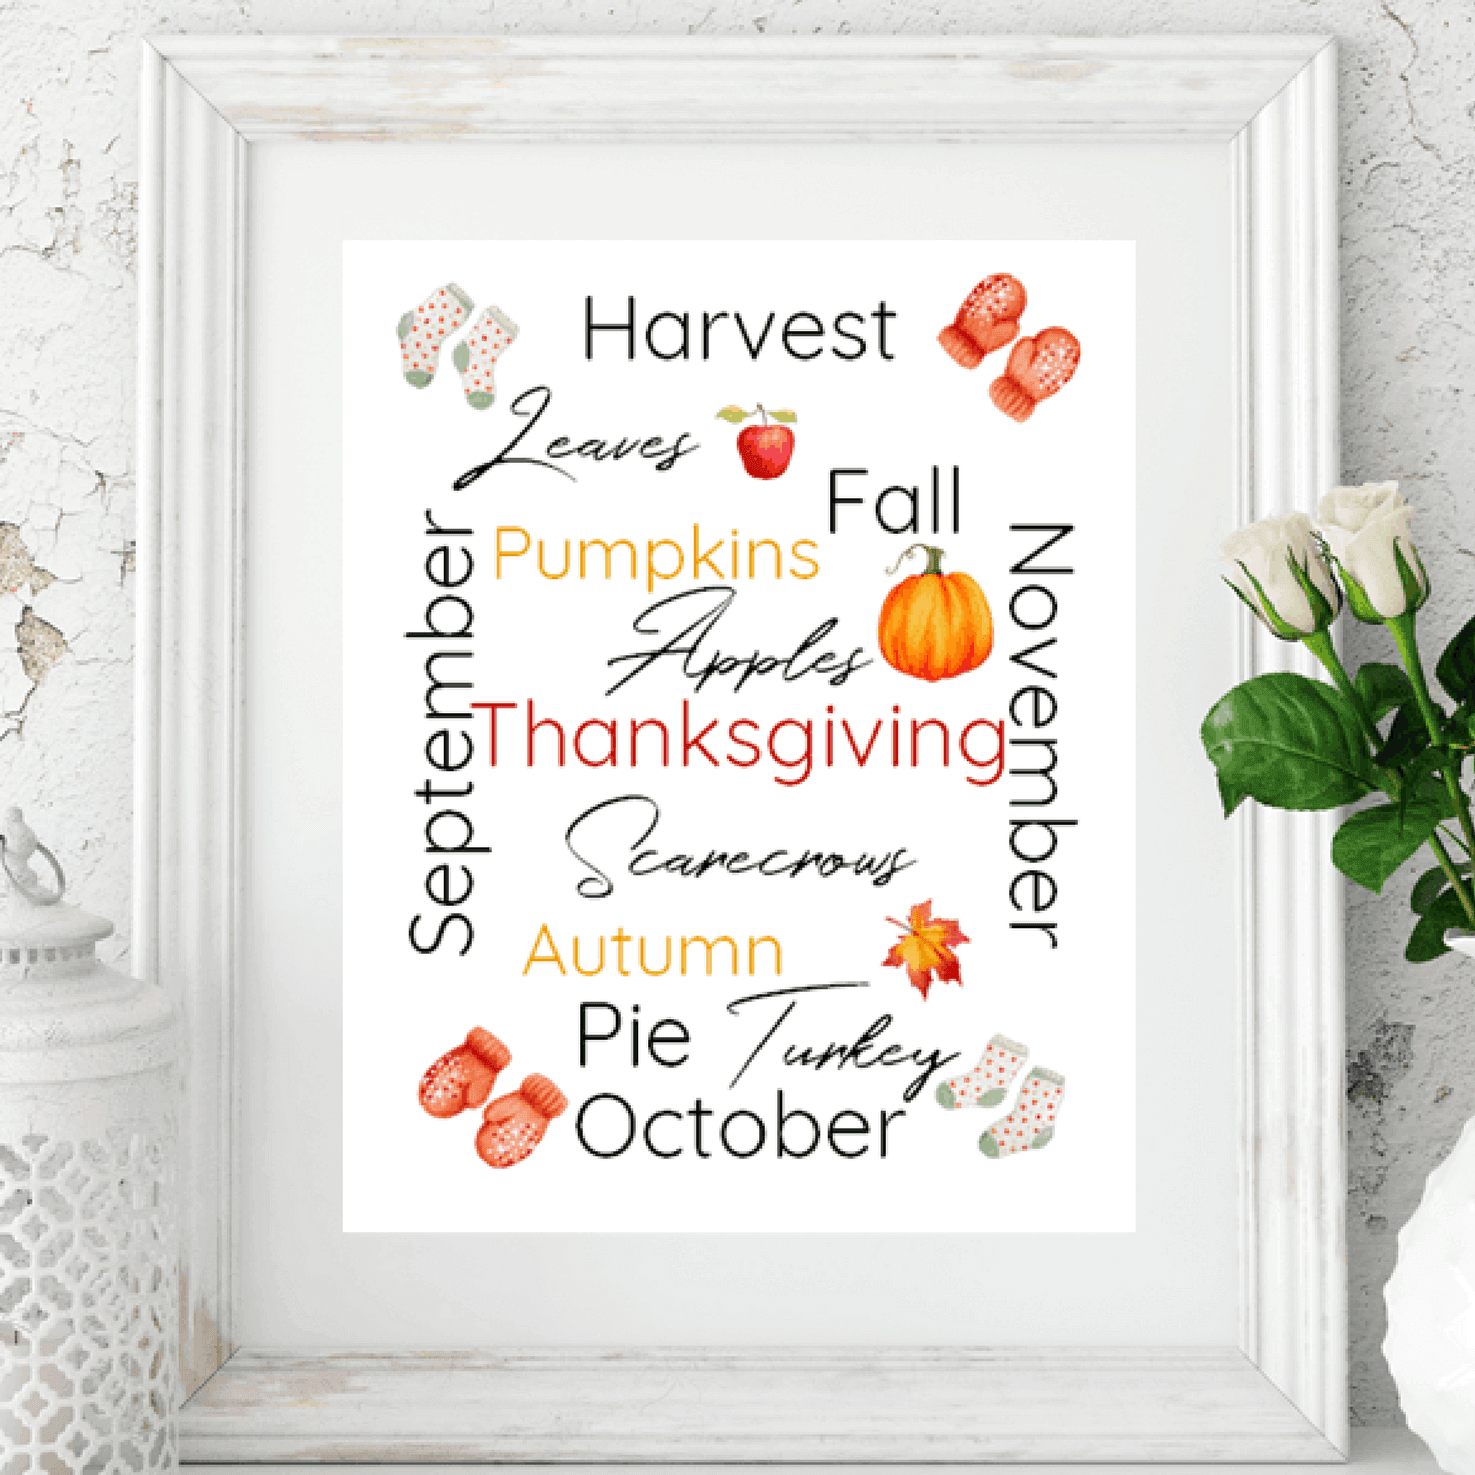 Click to download this free subway art printable for Autumn/Fall and celebrate the new season by giving your home some new decor – For more freebies, visit www.trueblissdesigns.com.